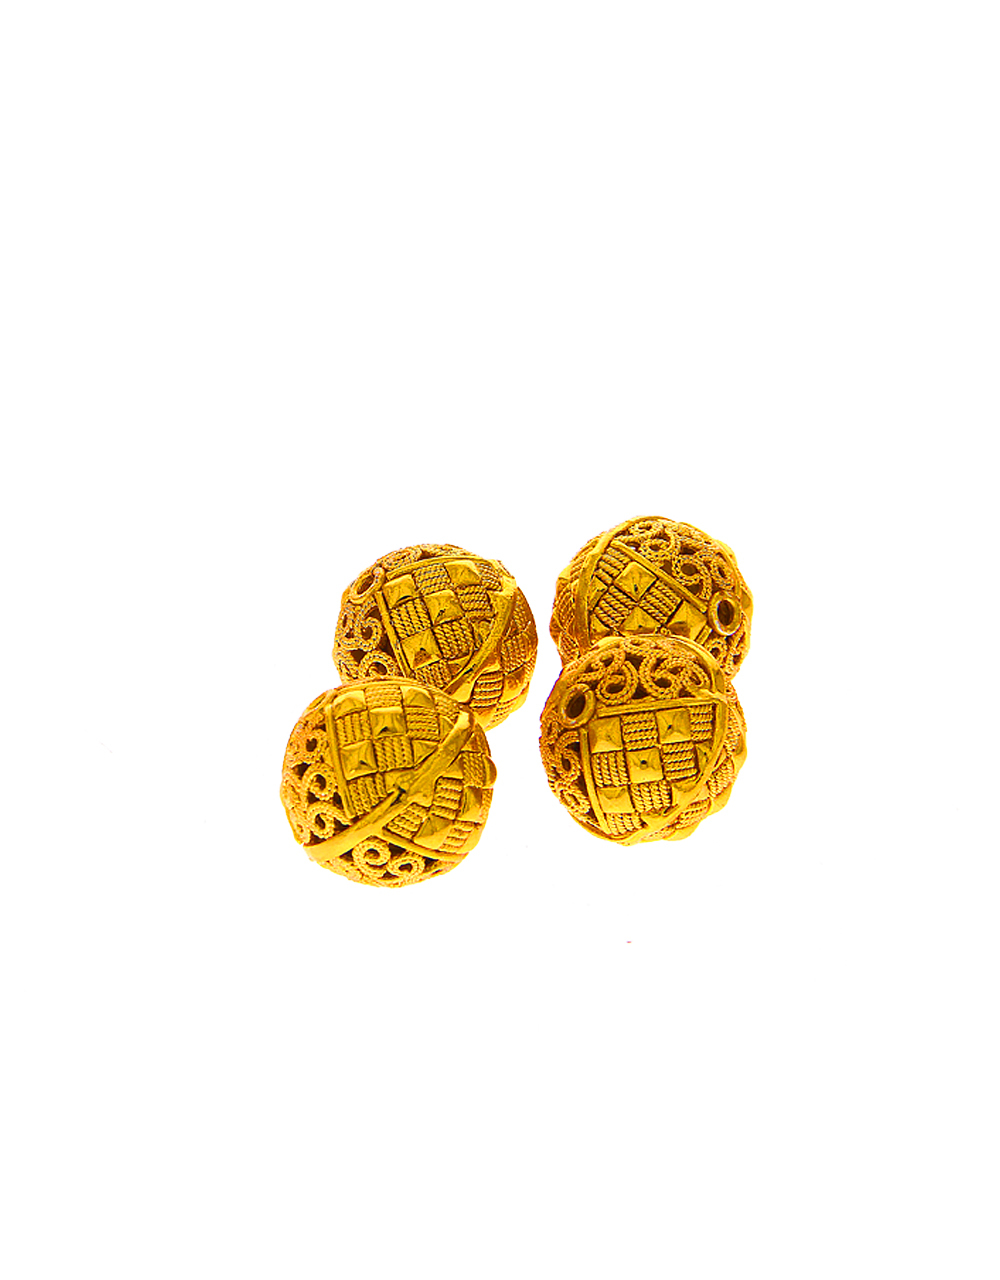 Gold Tone Adorable Beads for Jewellery Making